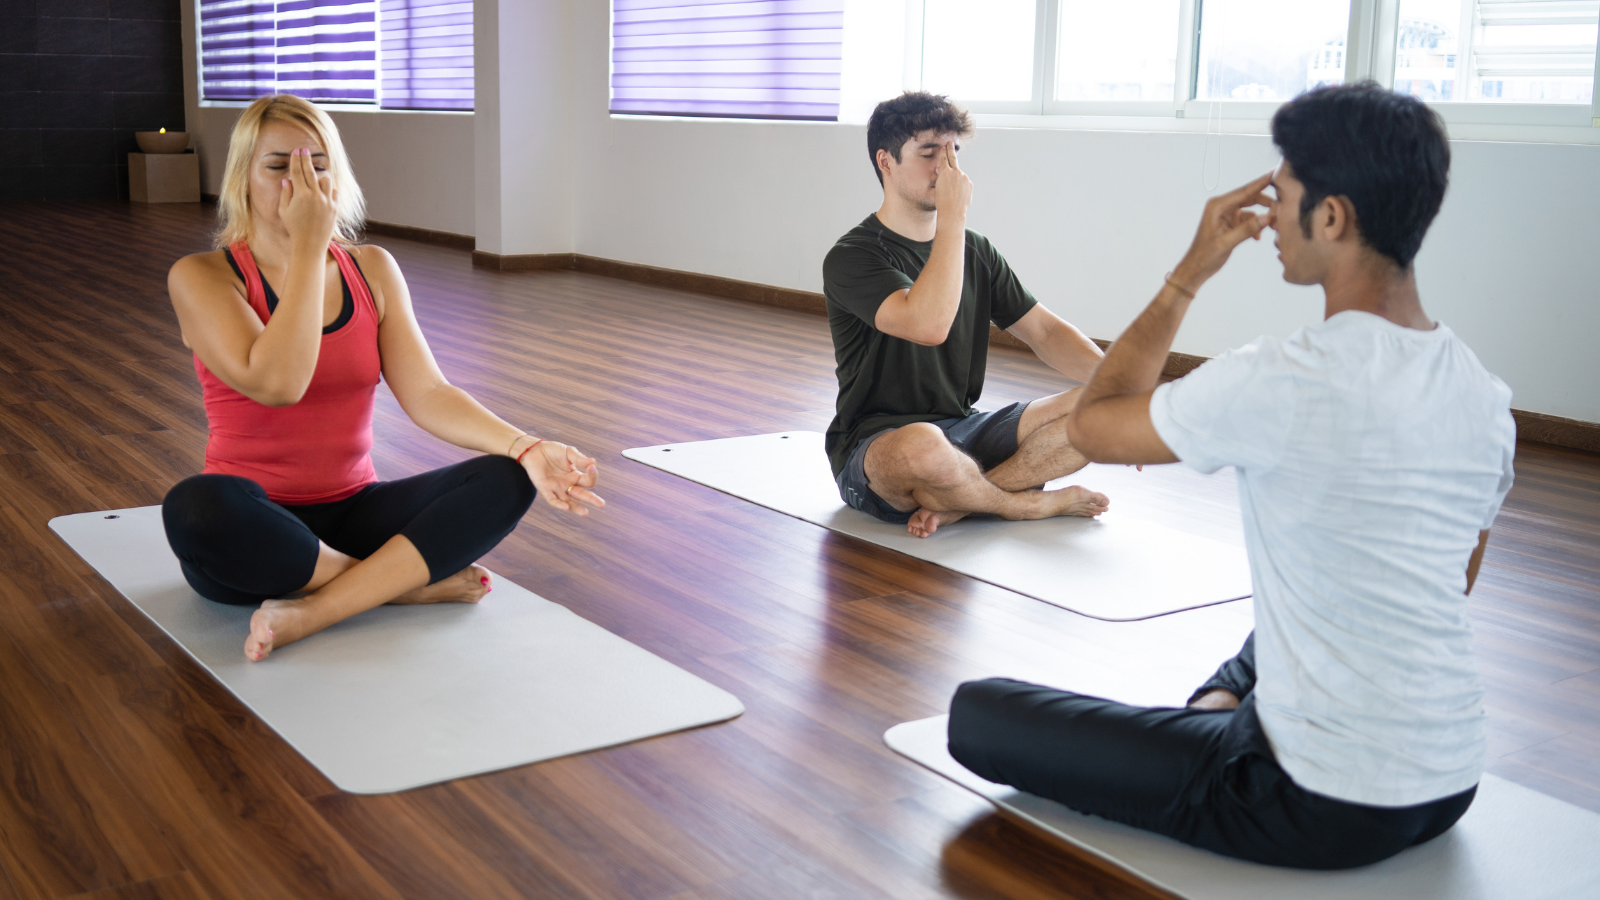 Students practicing alternate nostril breathing technique with instructor at yoga class